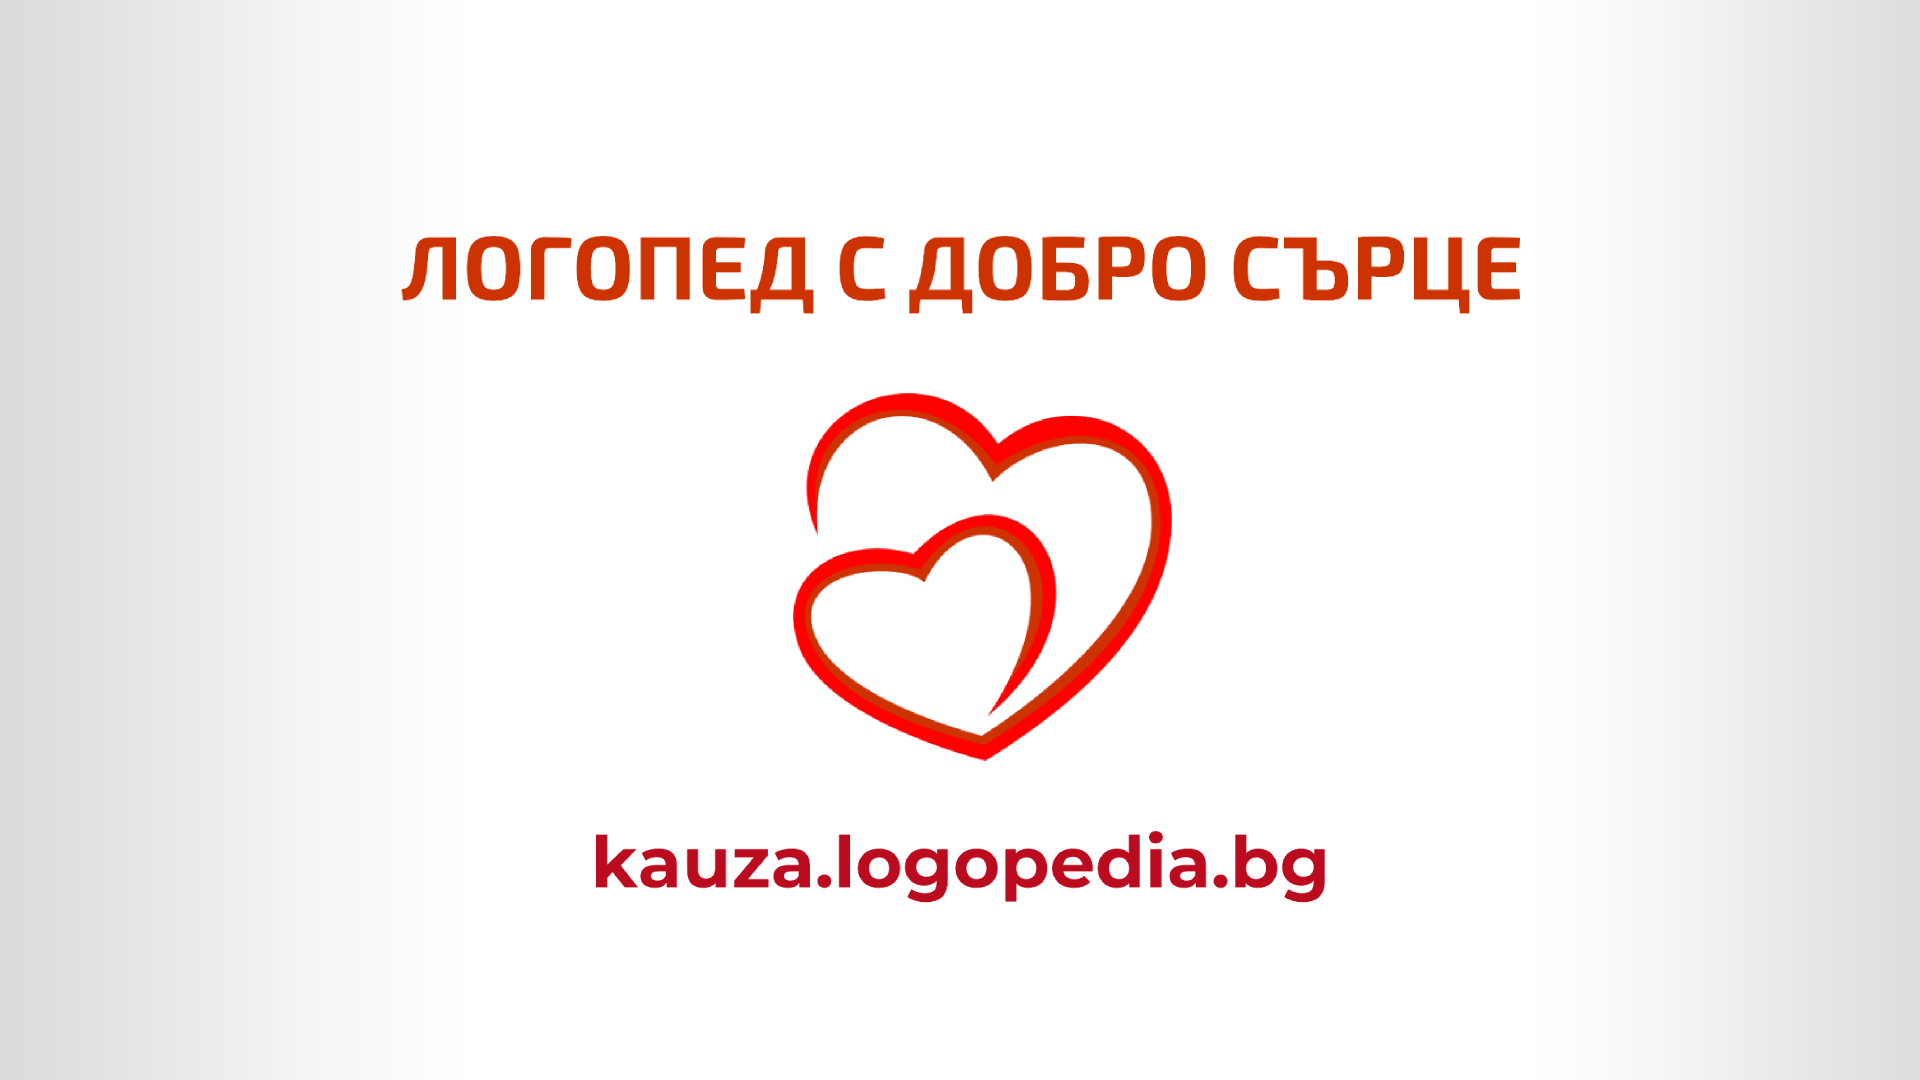 logopediabg kauza fb